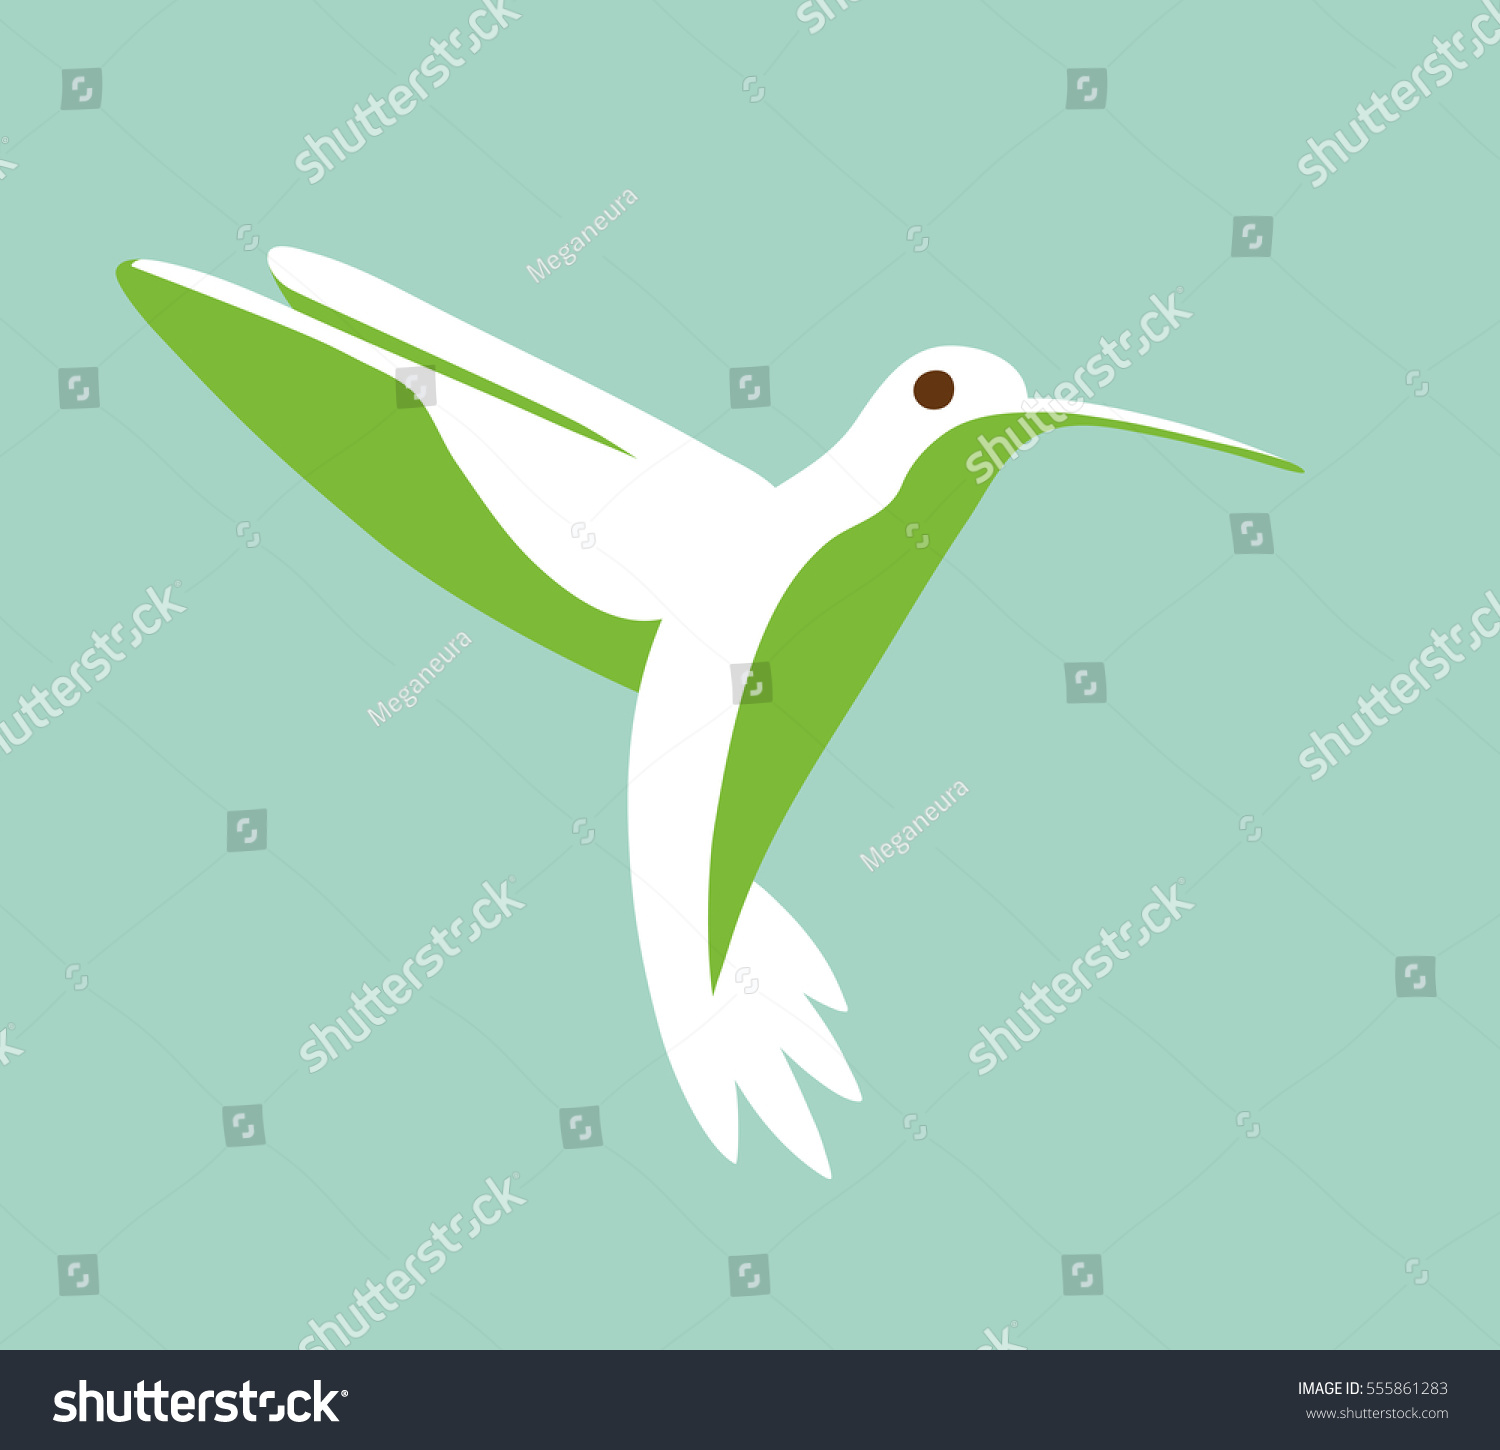 Hummingbird Stylized Simplistic Graphic Symbol Stock Illustration